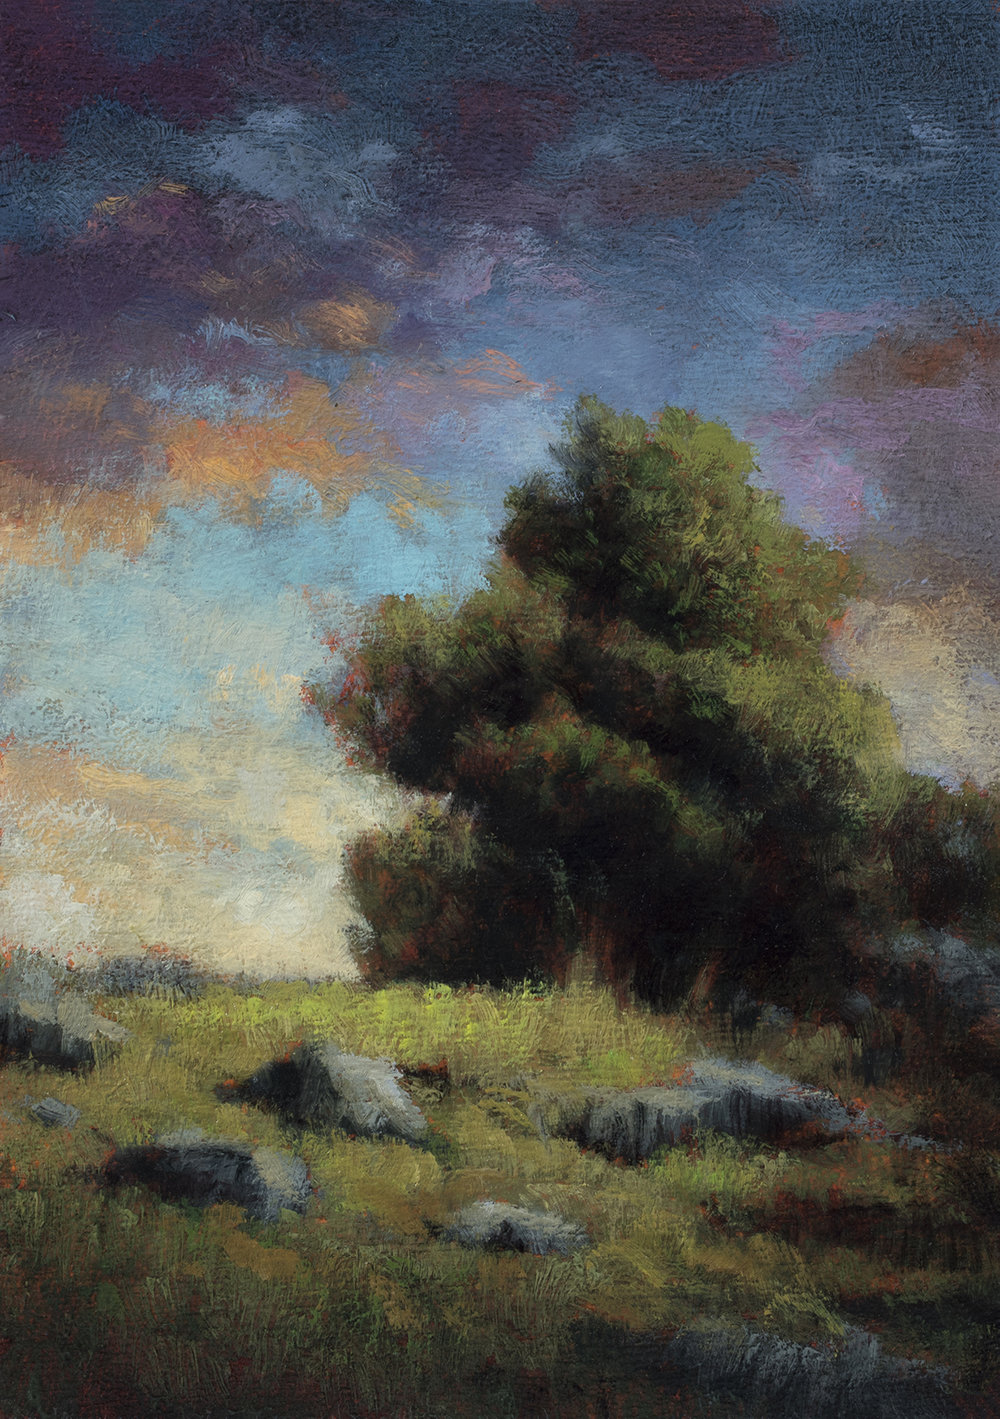 Sunset Paddock by M Francis McCarthy - 5x7 Oil on Wood Panel